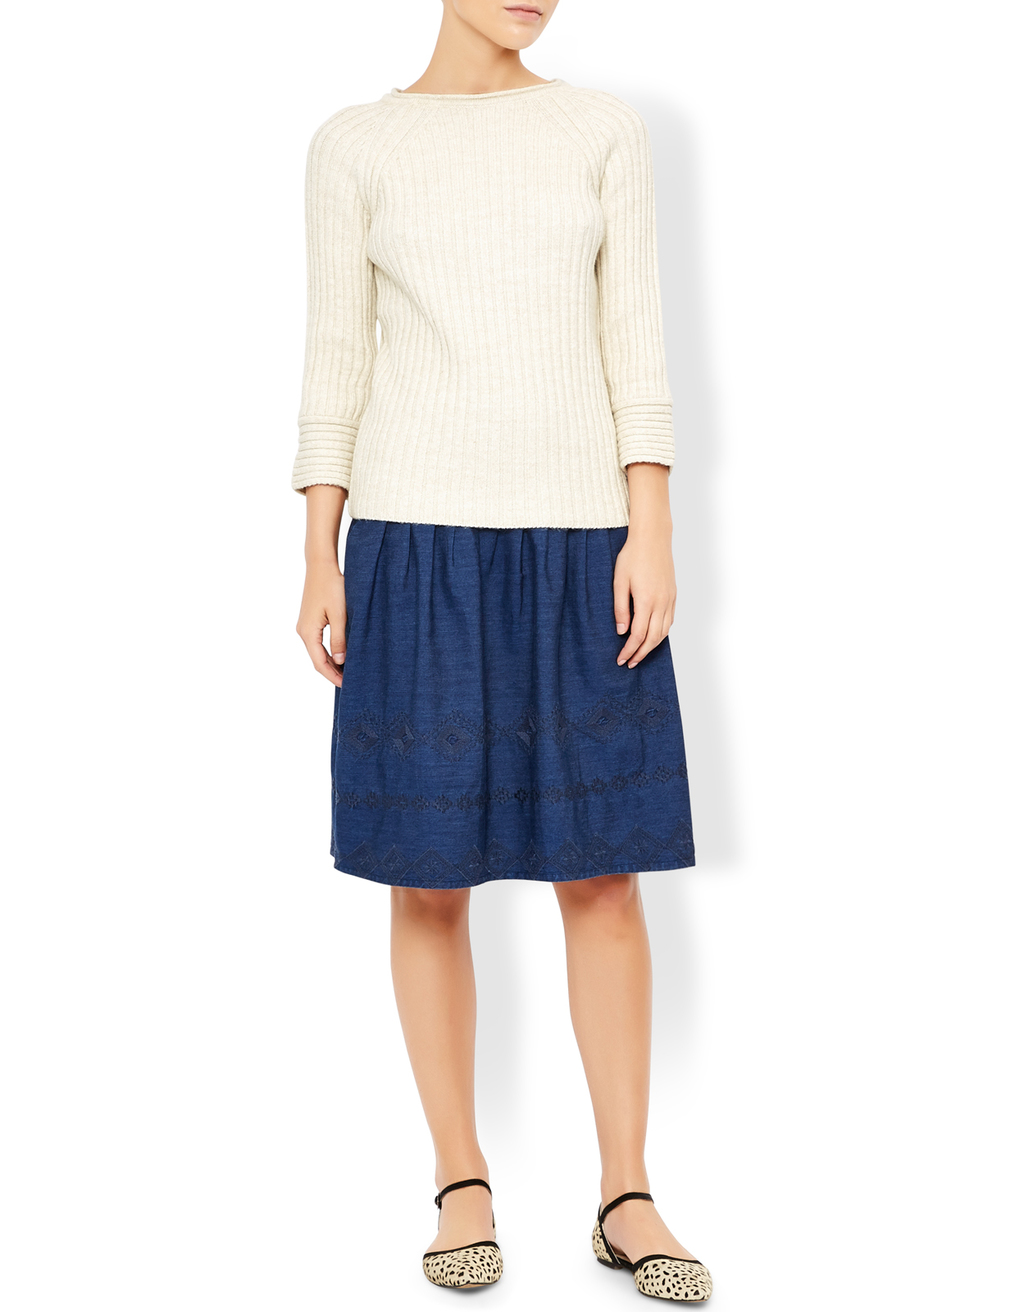 Kaleigh Slash Neck Jumper - pattern: plain; style: standard; predominant colour: ivory/cream; occasions: casual, creative work; length: standard; fit: standard fit; neckline: crew; sleeve length: 3/4 length; sleeve style: standard; texture group: knits/crochet; pattern type: fabric; fibres: viscose/rayon - mix; season: s/s 2016; wardrobe: basic